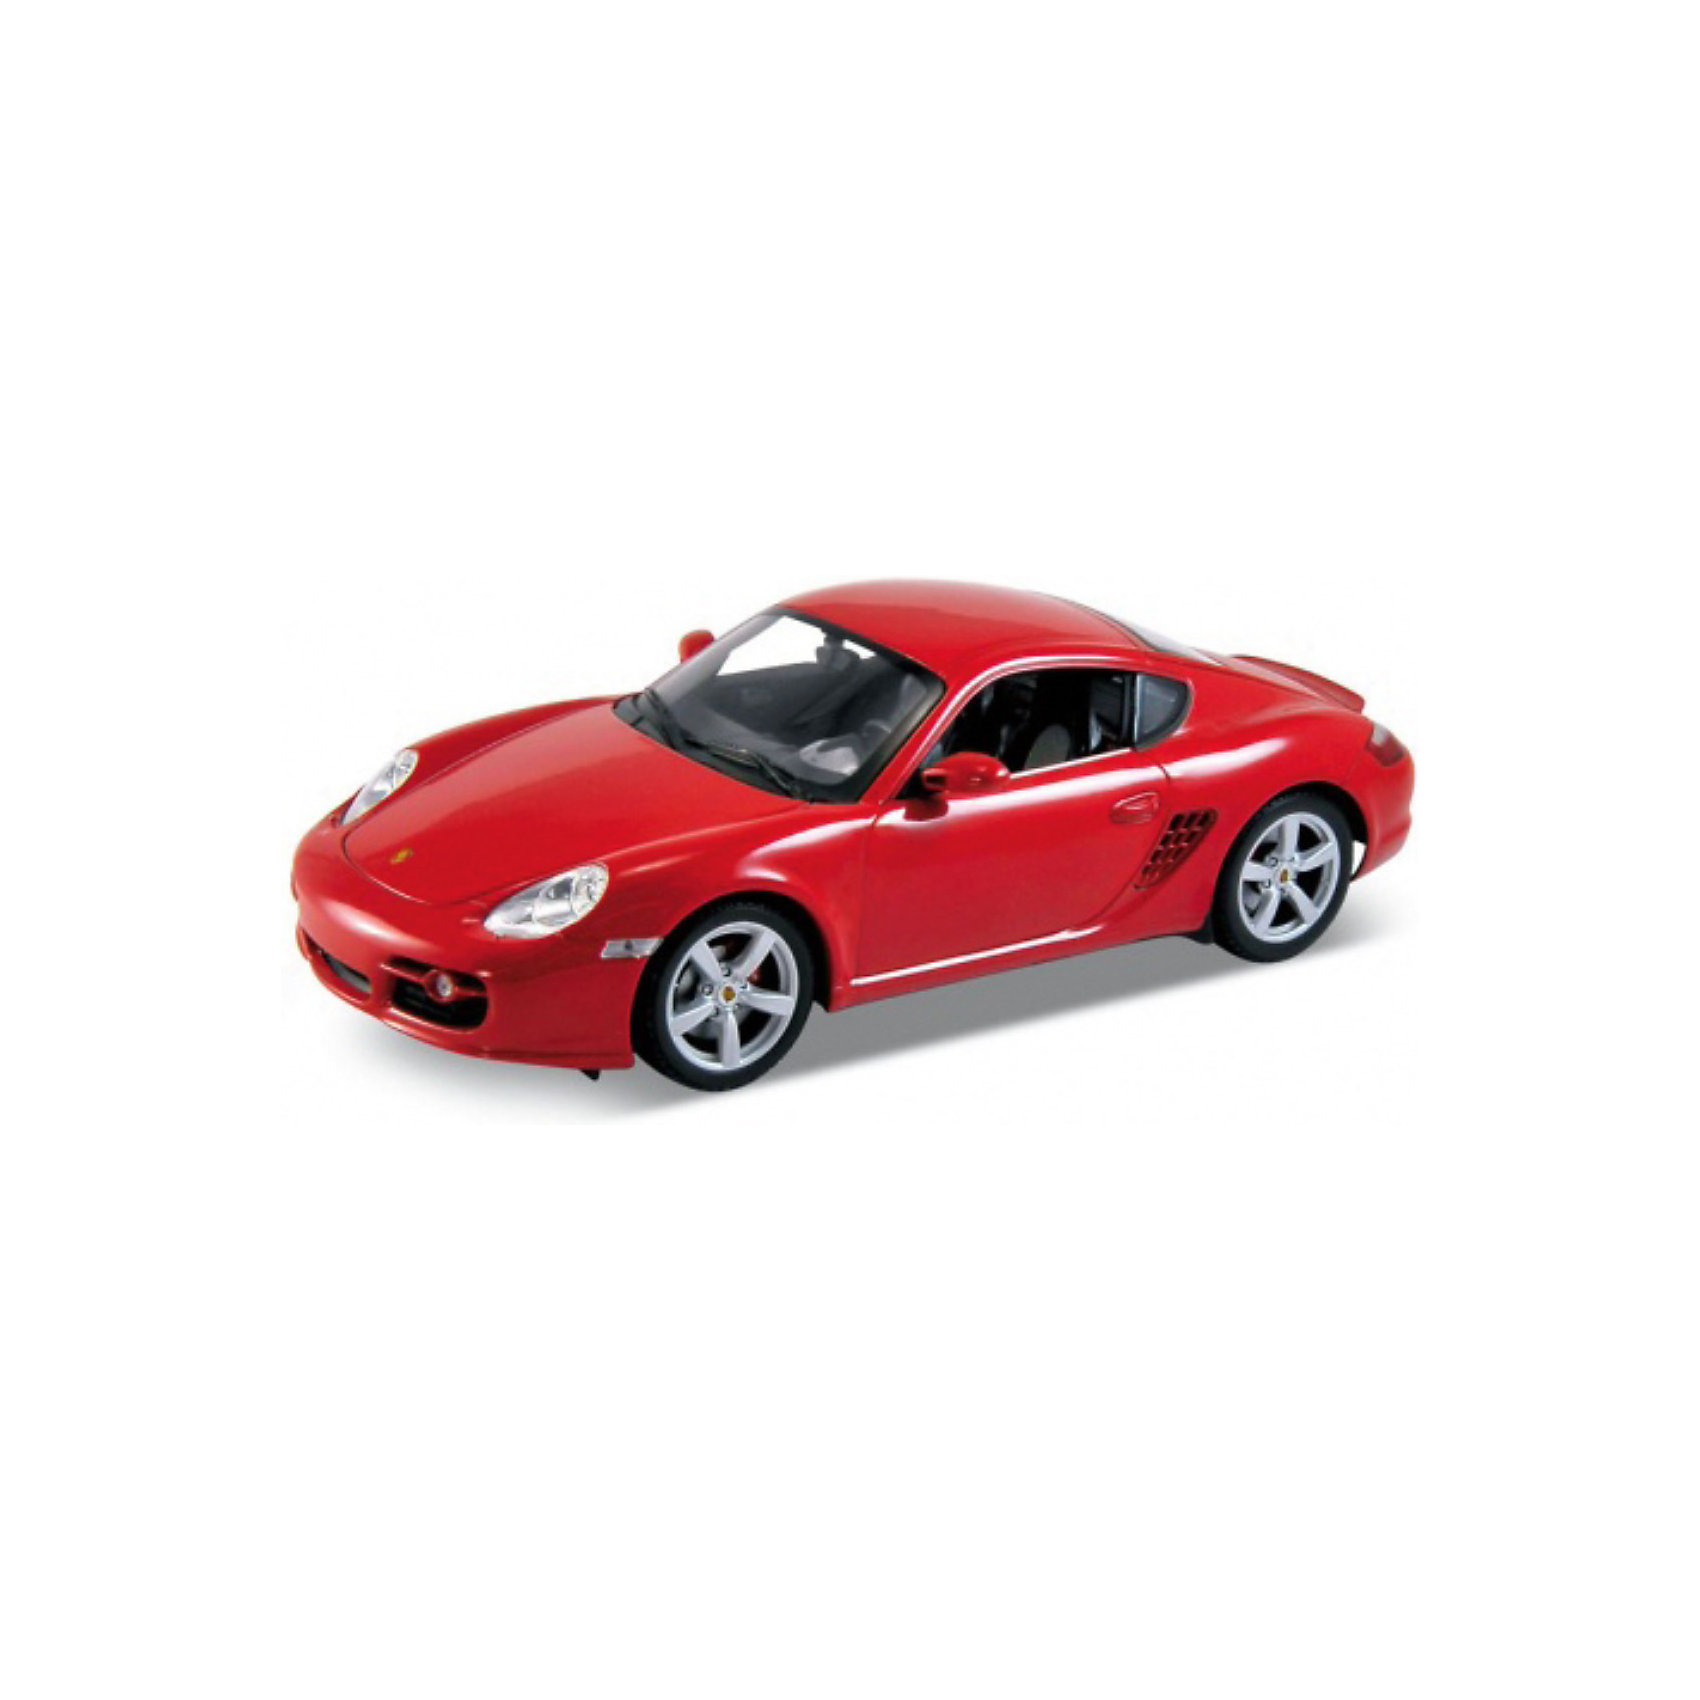 welly vw golf v 1 18 велли welly Welly Модель машины 1:18 Porsche Cayman S, Welly